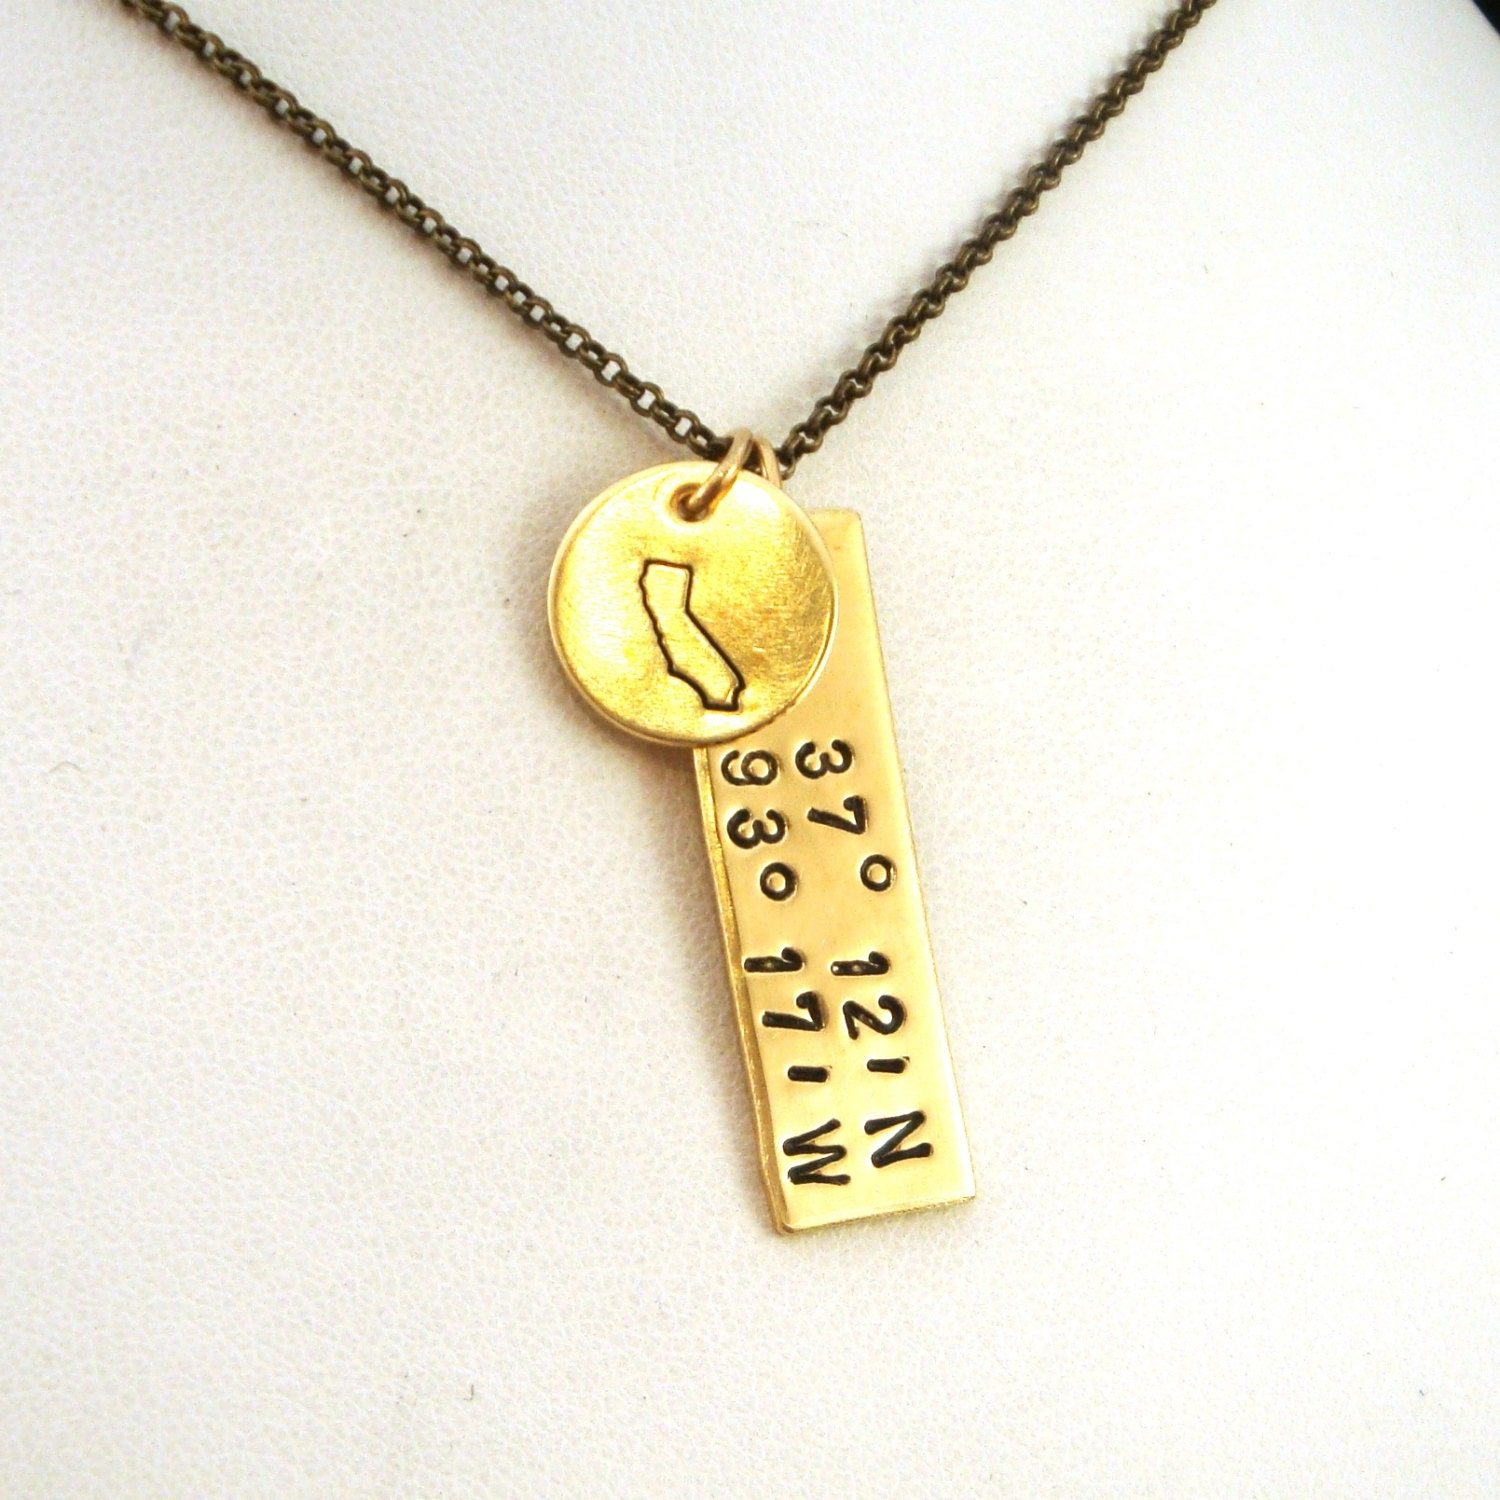 Gps Coordinates Necklace: California GPS Coordinates Necklace California State Brass